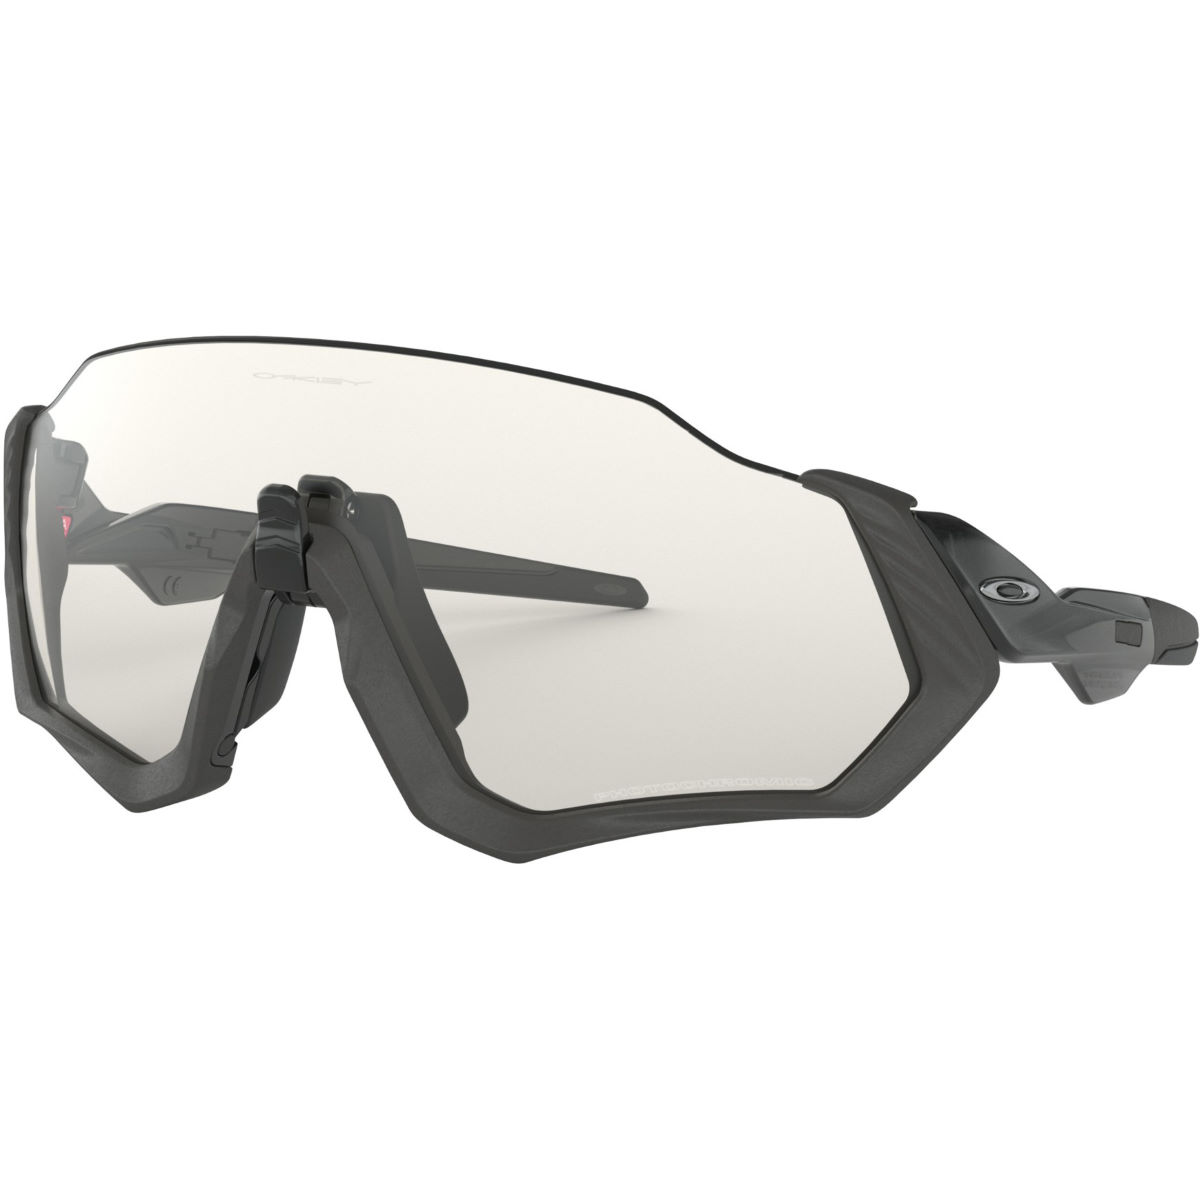 Gafas de sol Oakley Flight Jacket Clear Black - Gafas de sol